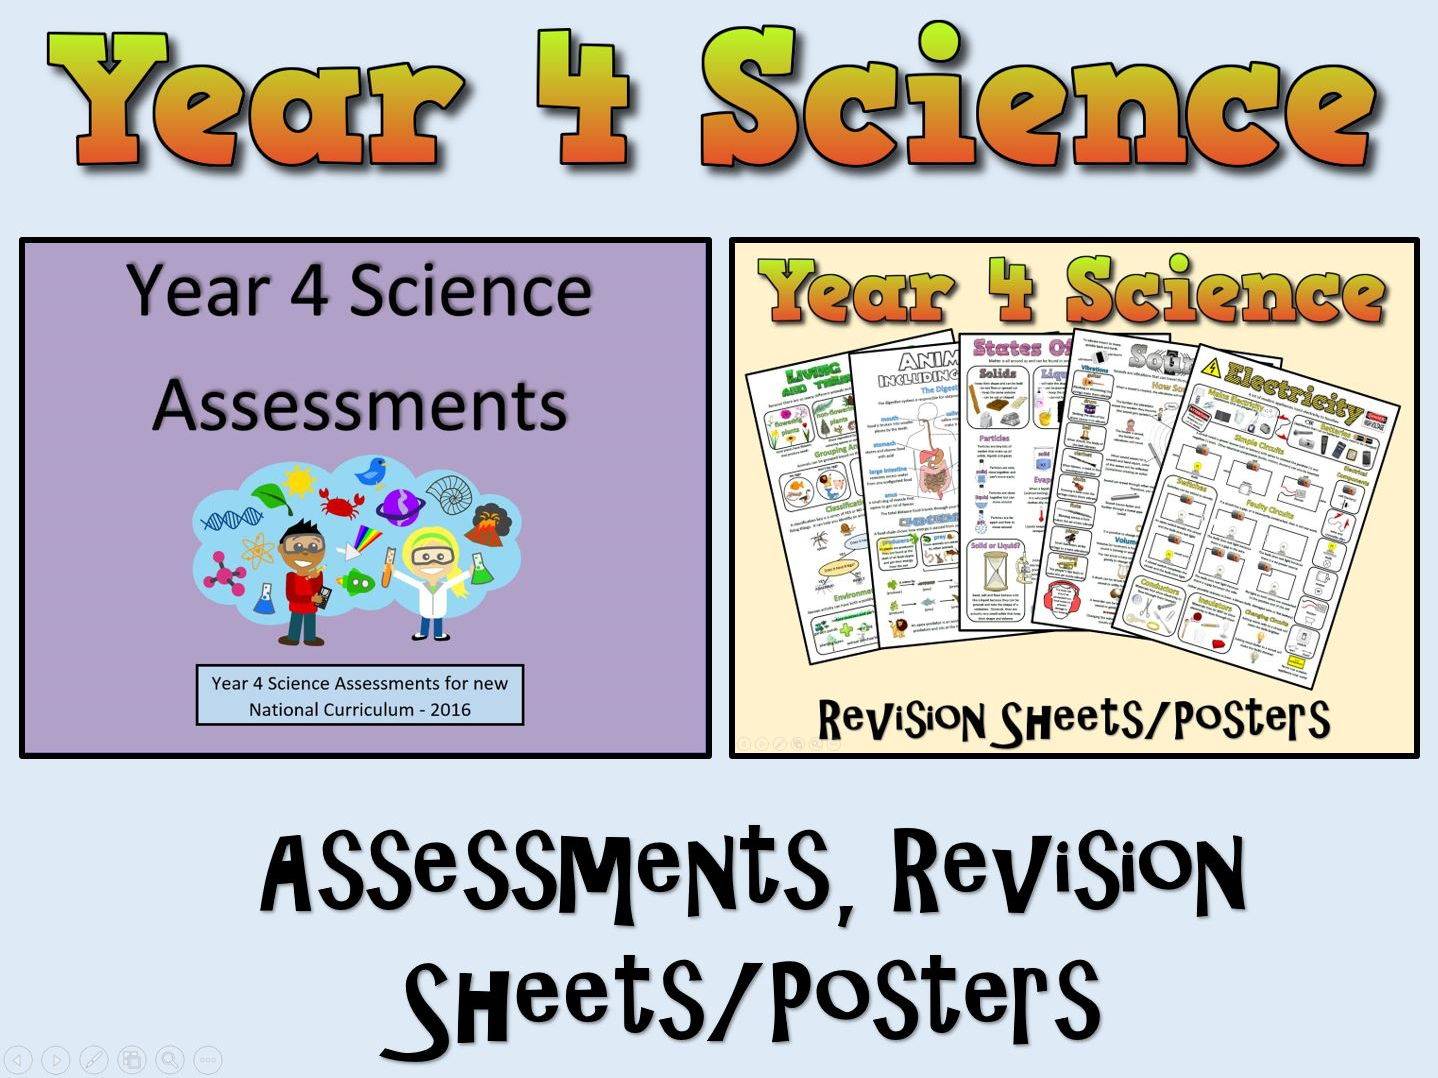 Year 4 Science Assessments + Posters/Revision Sheets